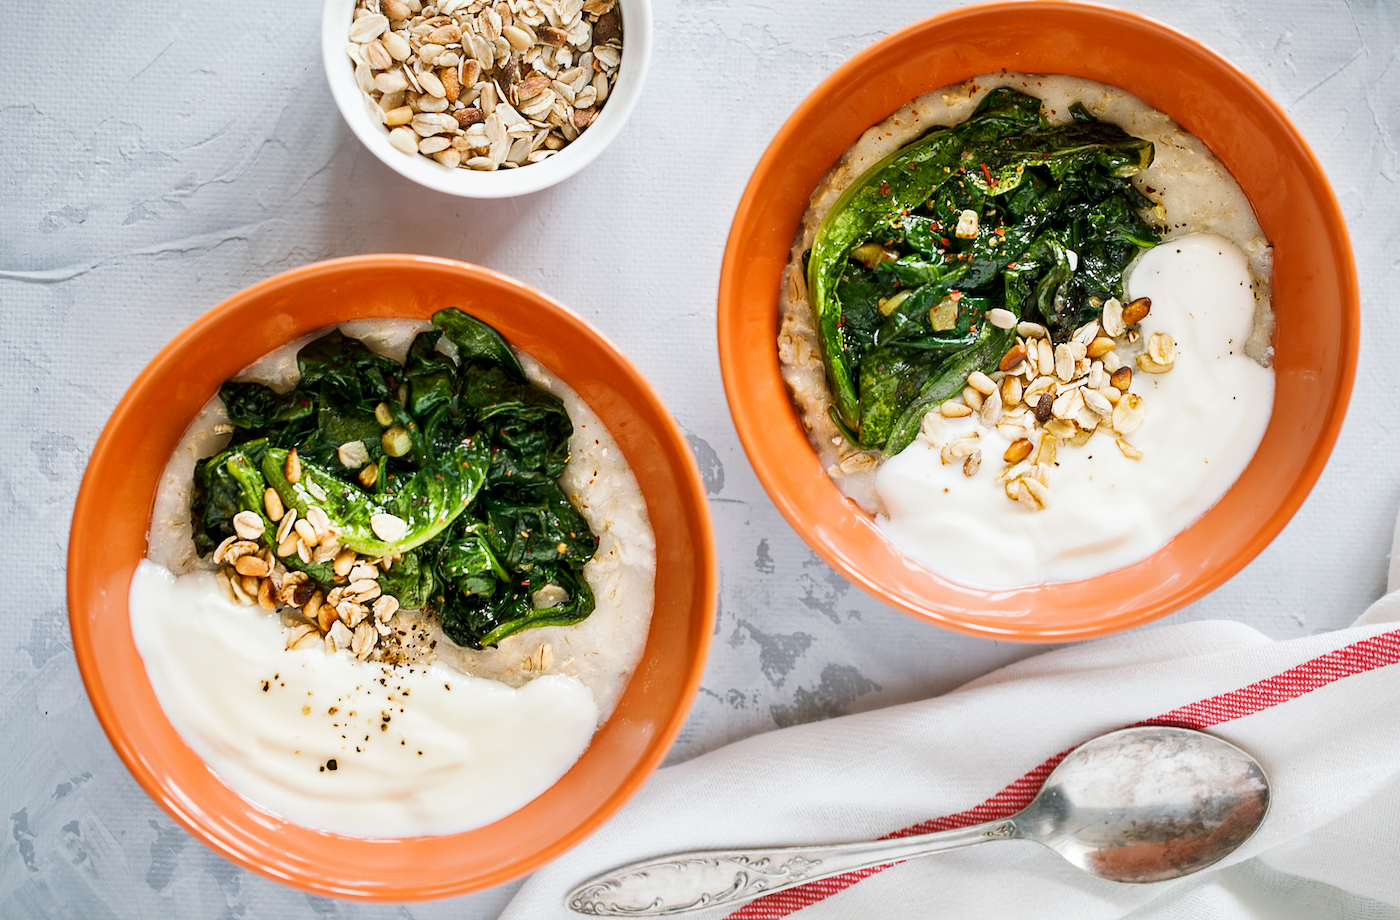 This high-fiber oatmeal alternative will keep your blood sugar levels stable all morning long